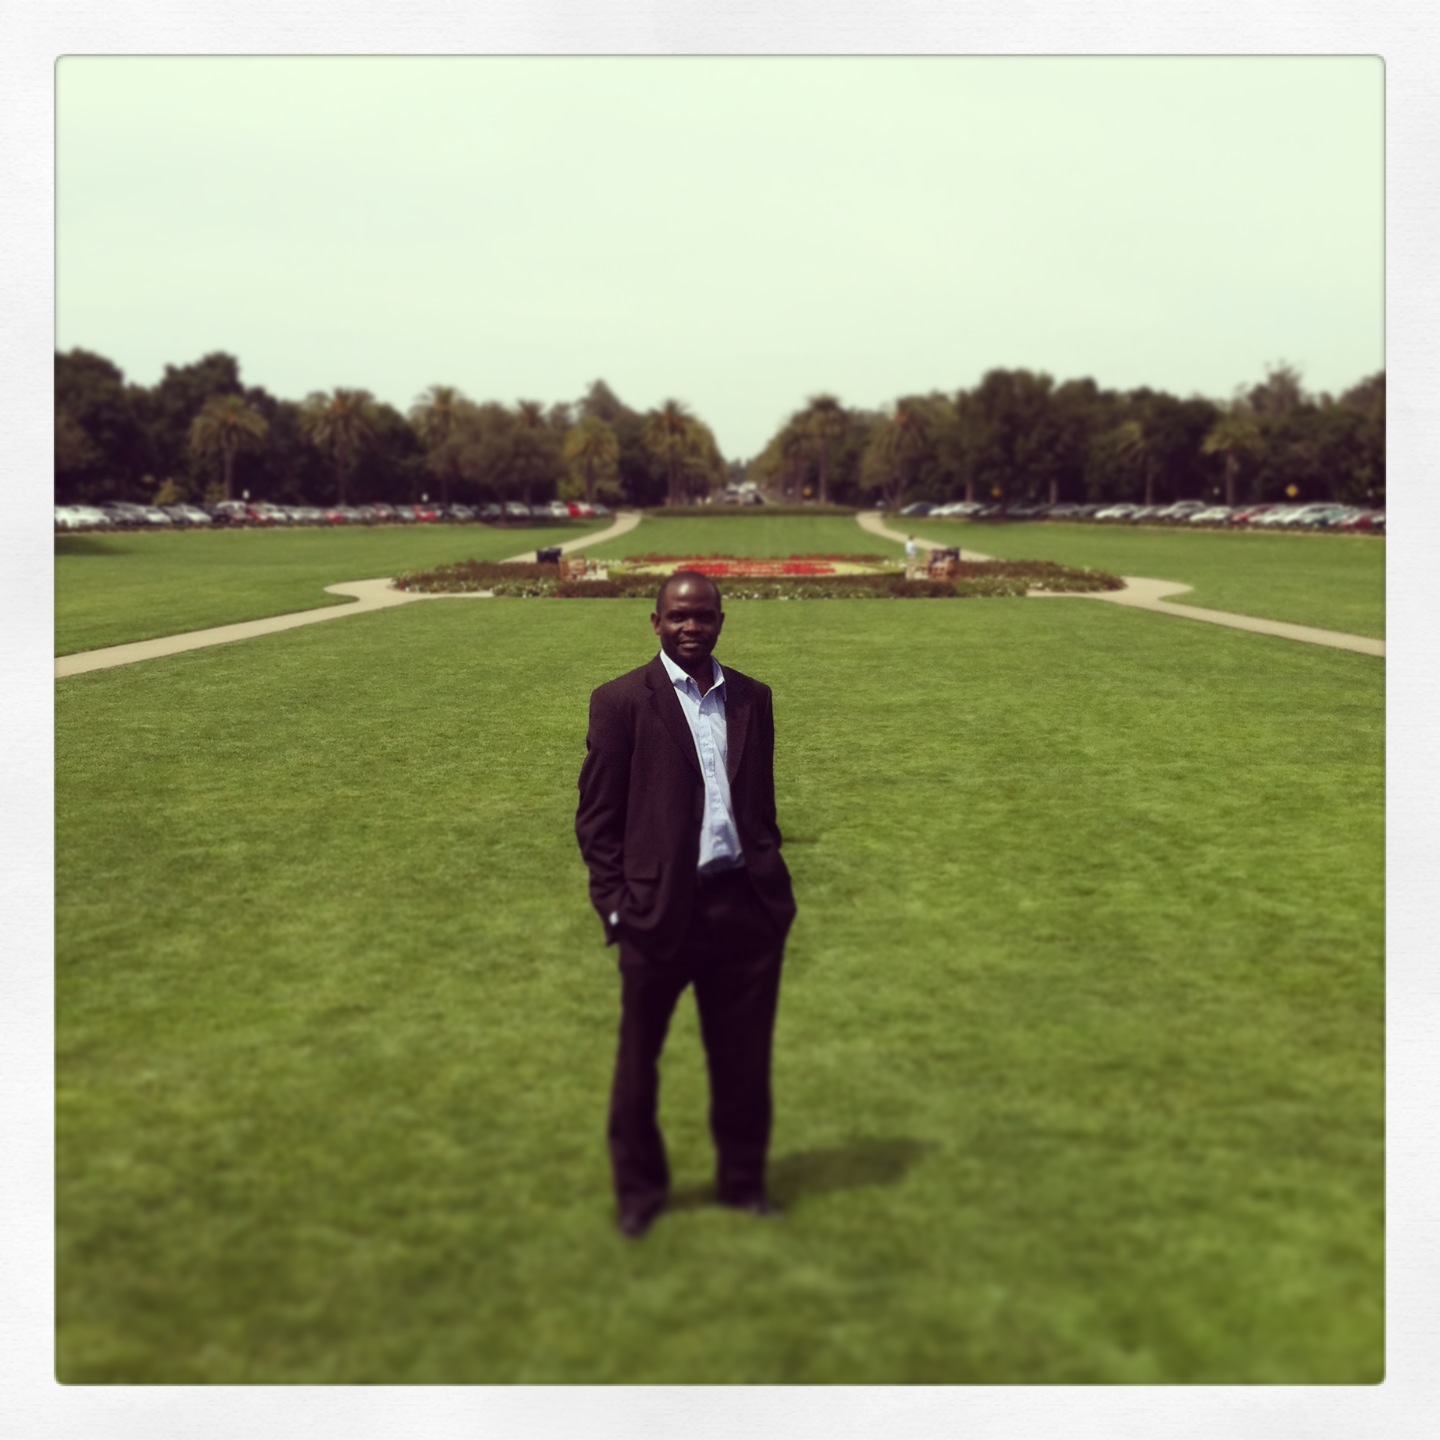 A man stands wearing a dark suit in a grassy field of a school campus